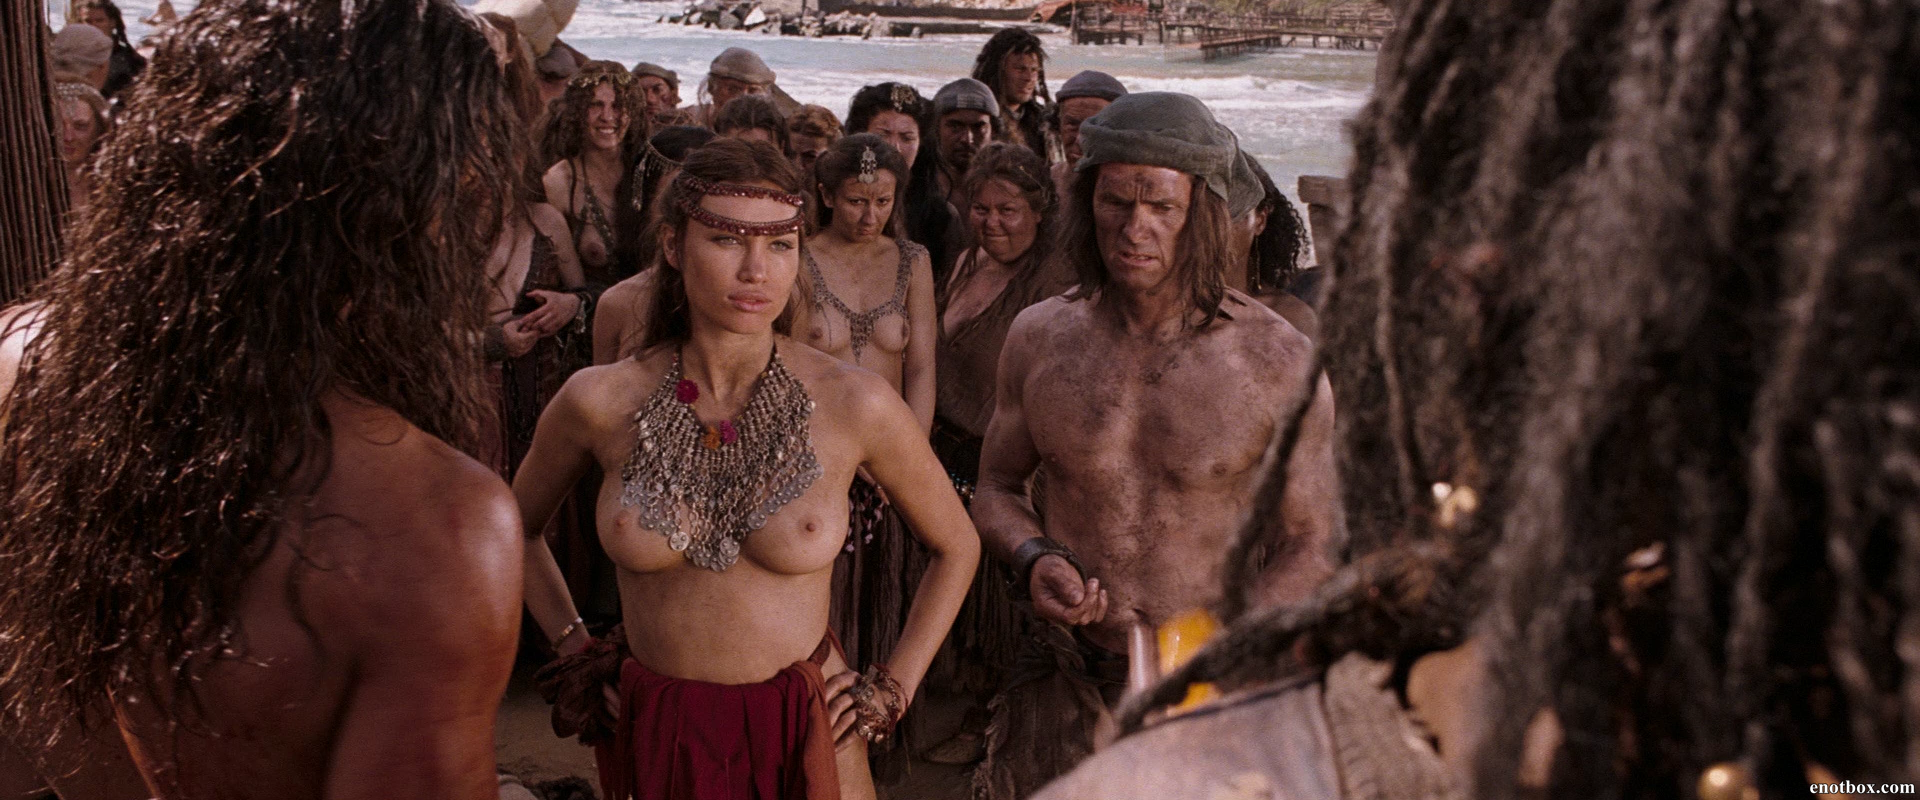 Free preview of rachel nichols naked in conan the barbarian